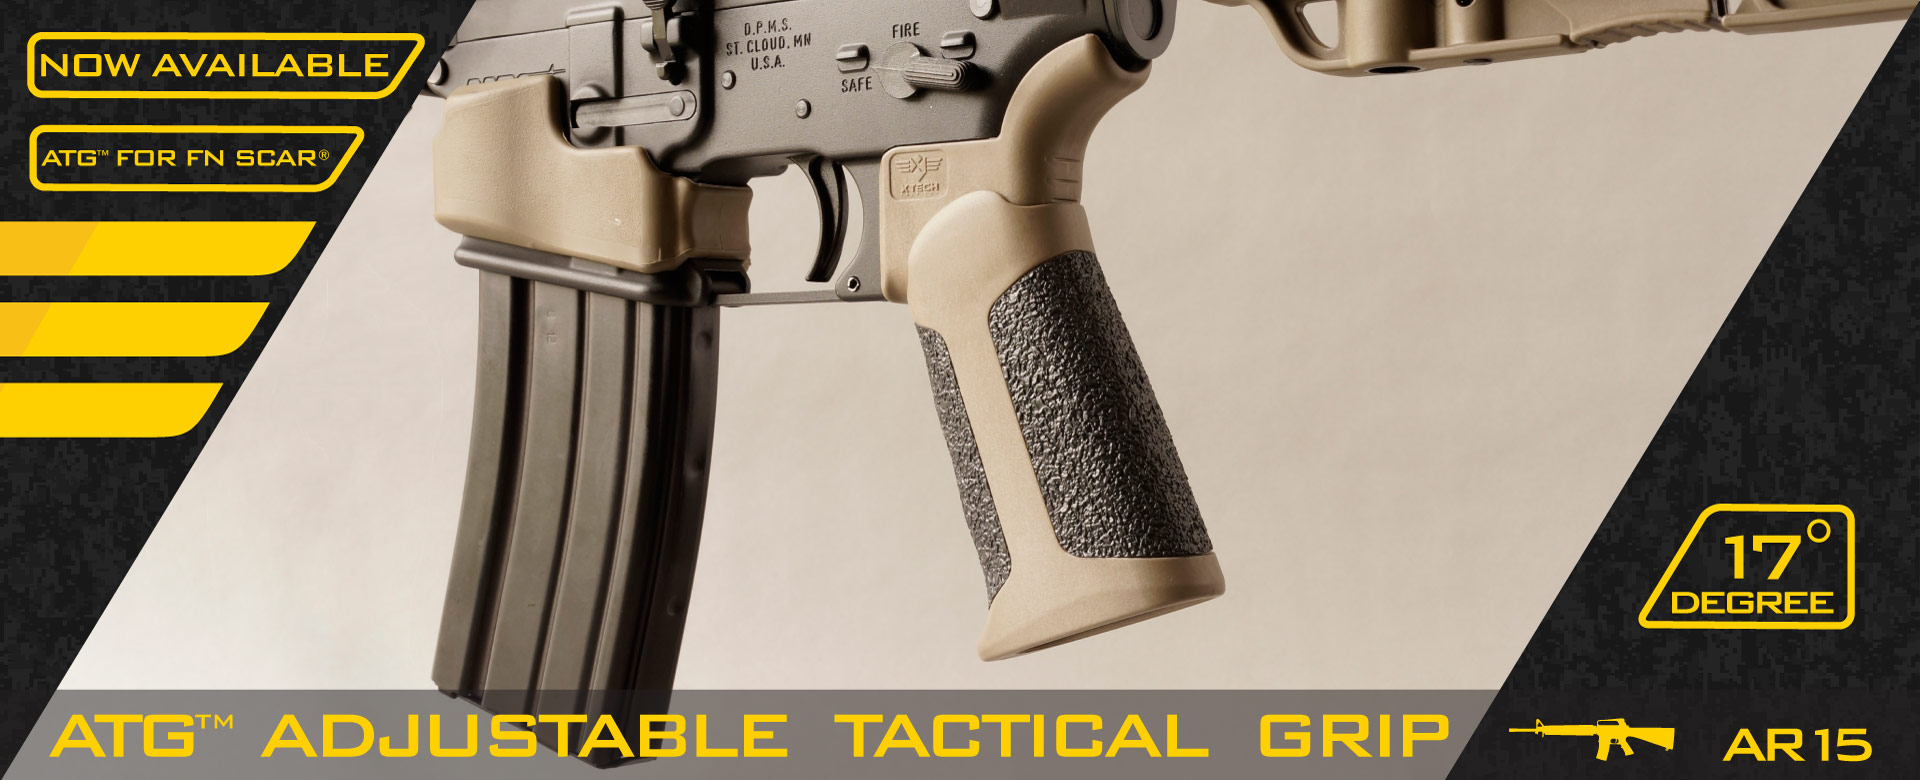 ATG-Adjustable-Tactical-Grip-Slider-4